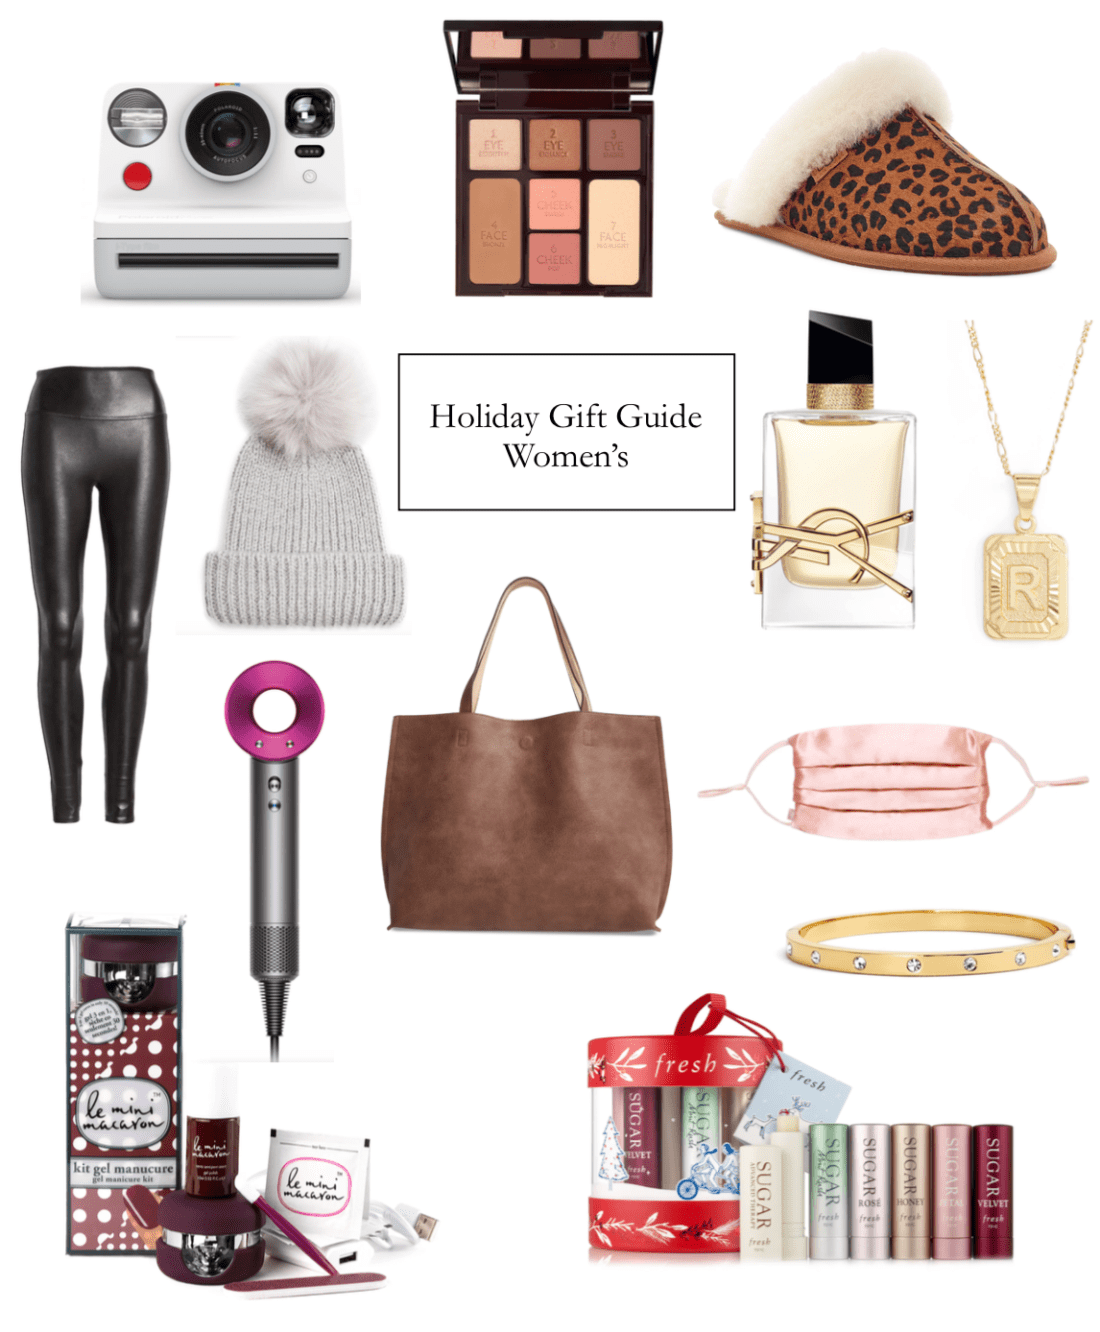 women's gift holiday guide